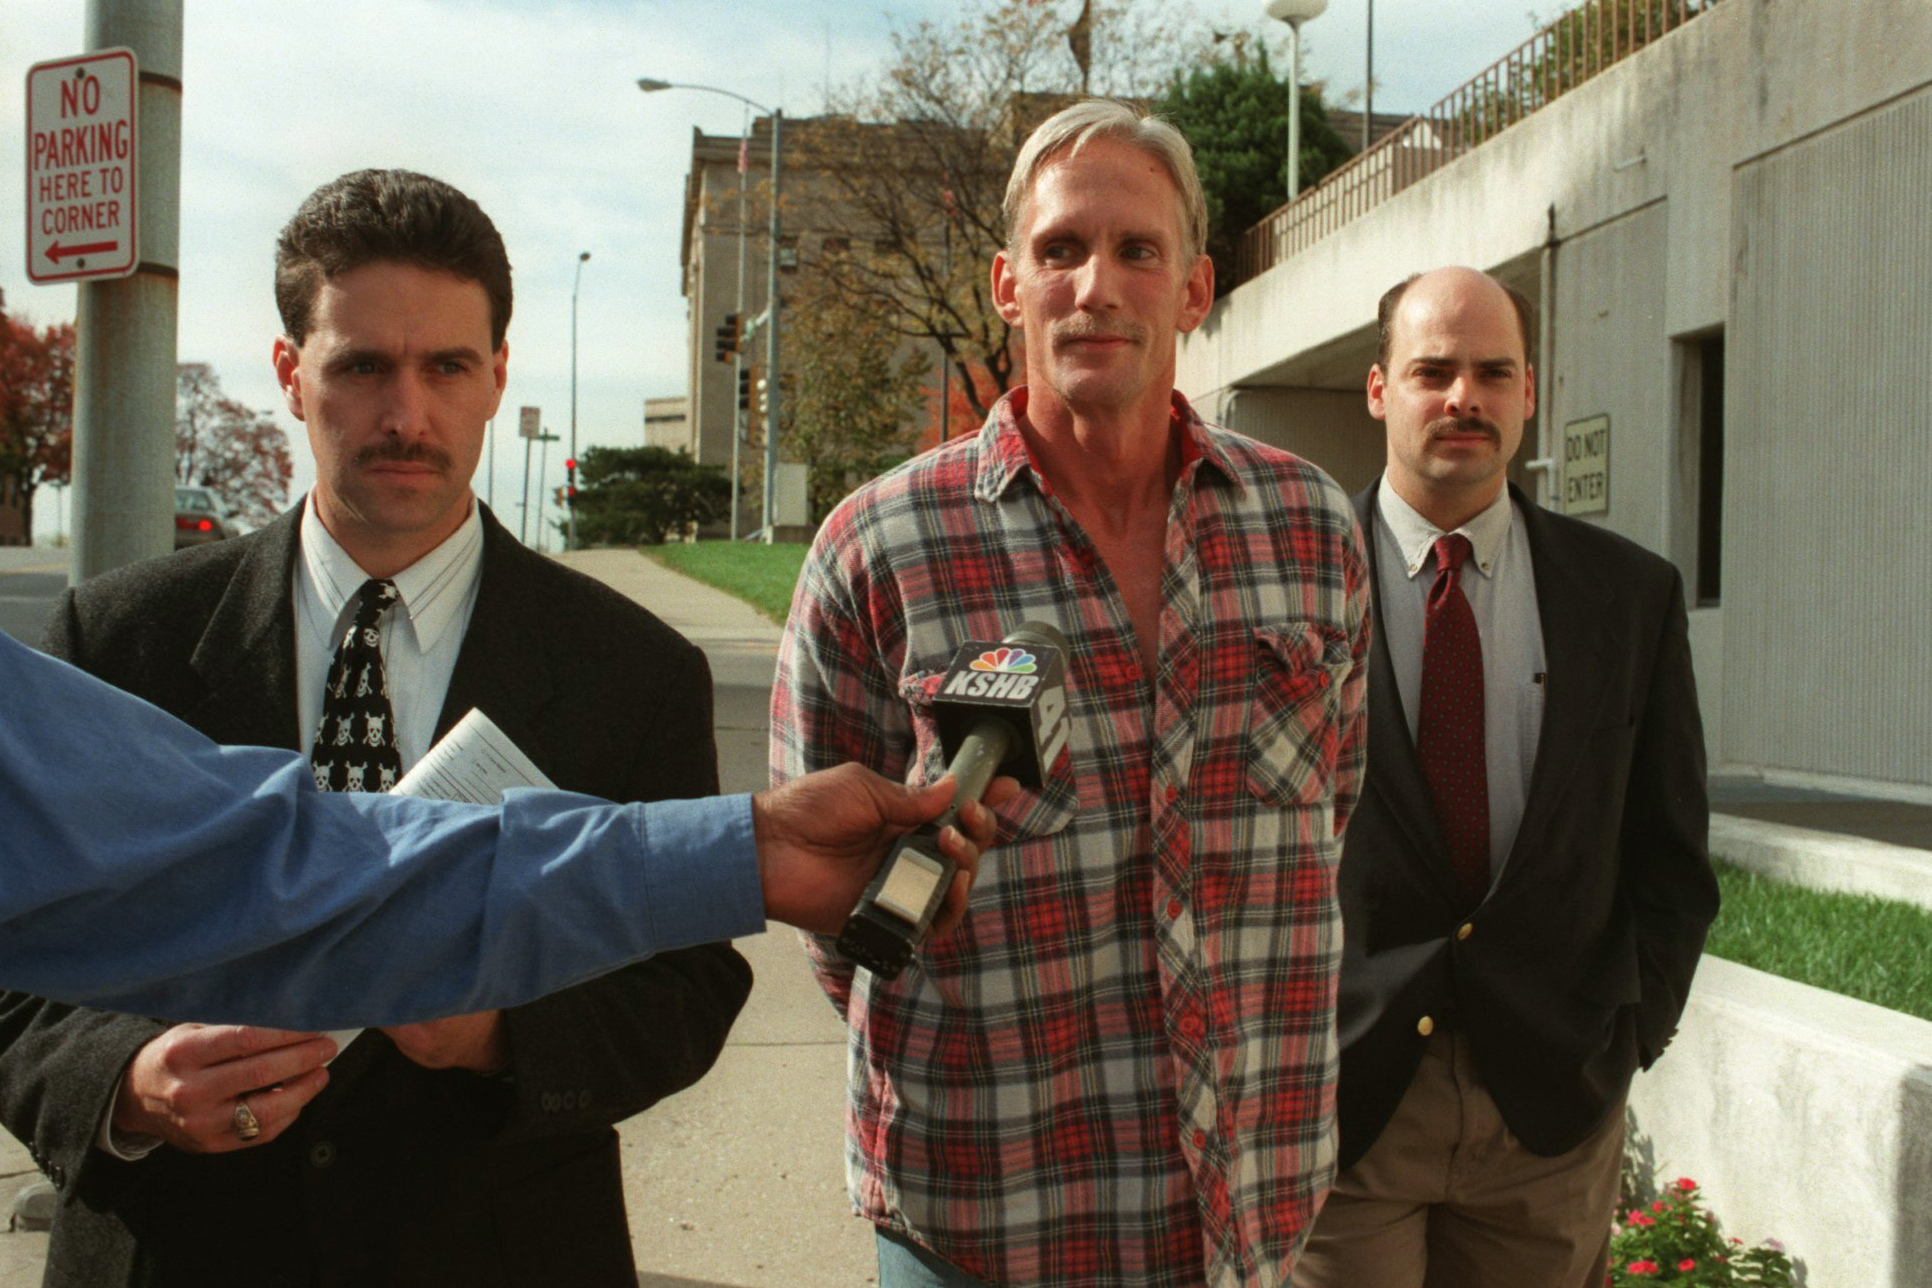 In this 1998 photo, Wesley Ira Purkey, center, is escorted by police officers in Kansas City, Kansas, after he was arrested in connection with the death of 80-year-old Mary Ruth Bales. (Jim Barcus/The Kansas City Star via AP)